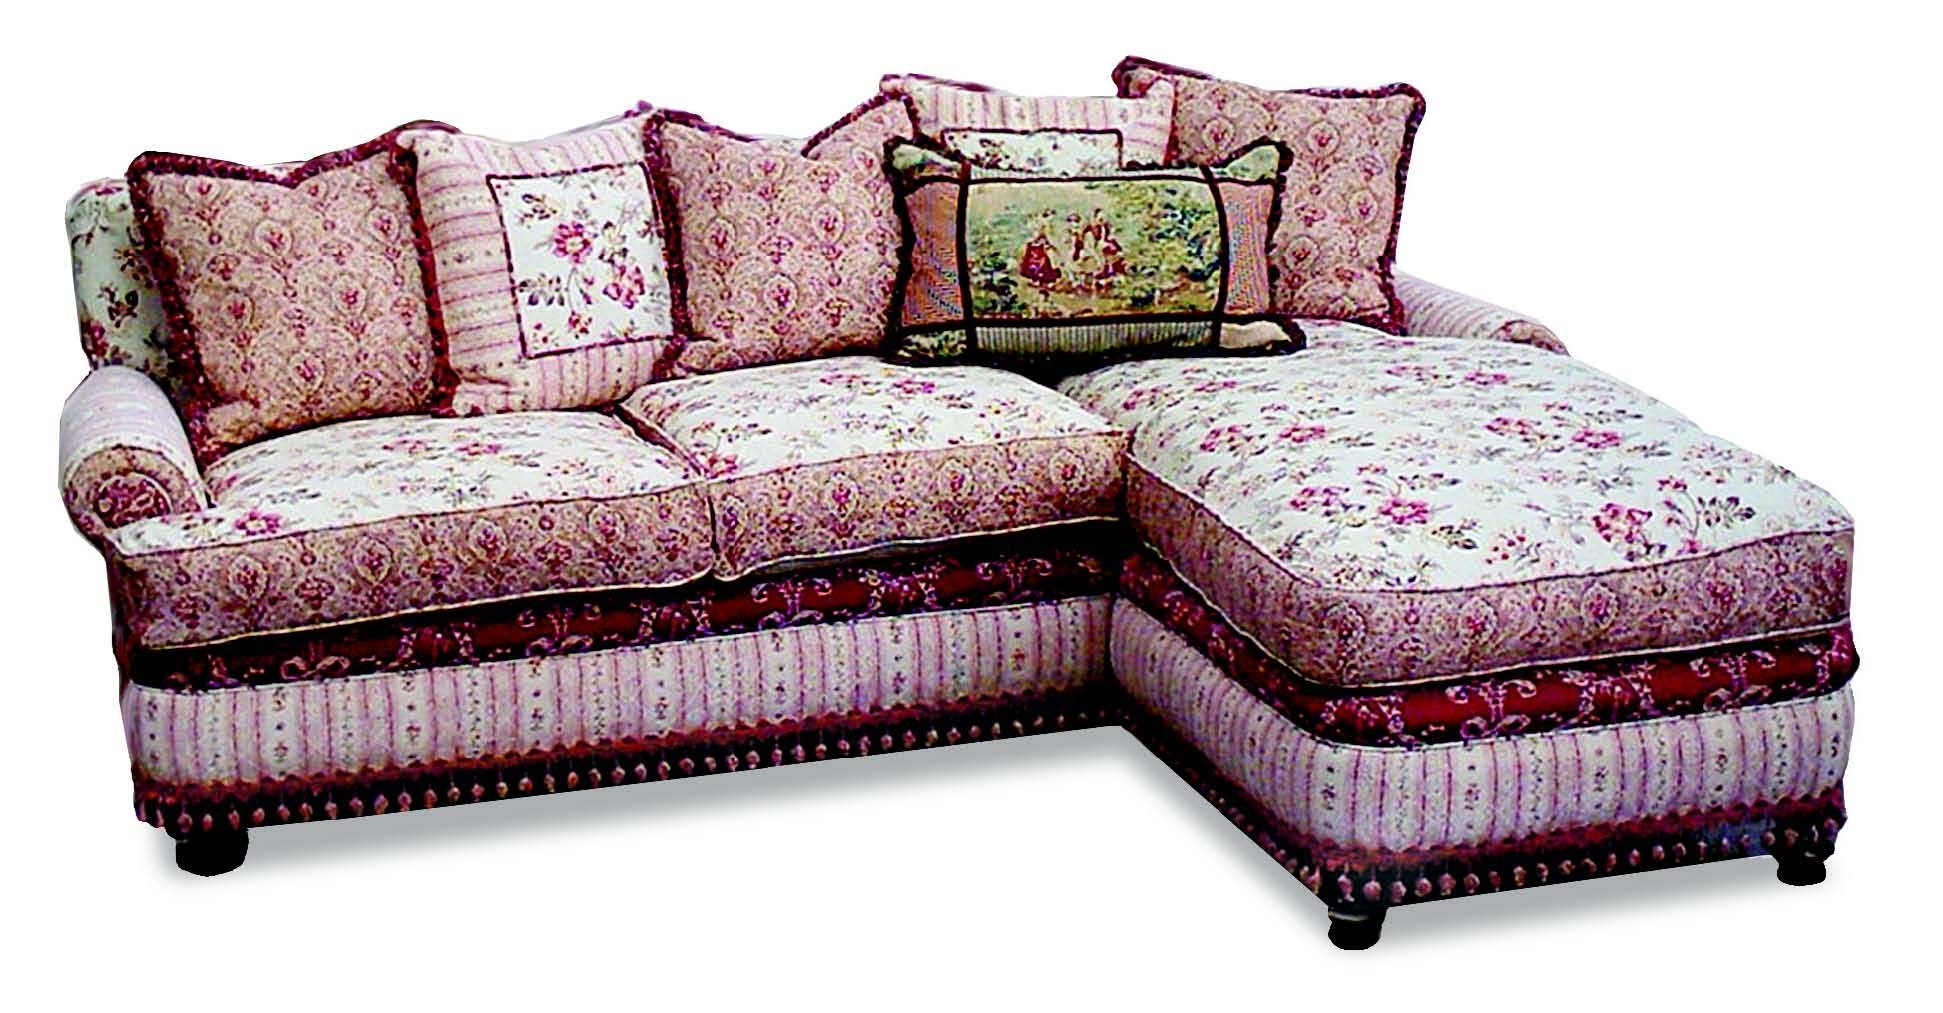 Amusing Shabby Chic Sectional Sofa 16 For Your Deep Leather Within Shabby  Chic Sectional Sofas (